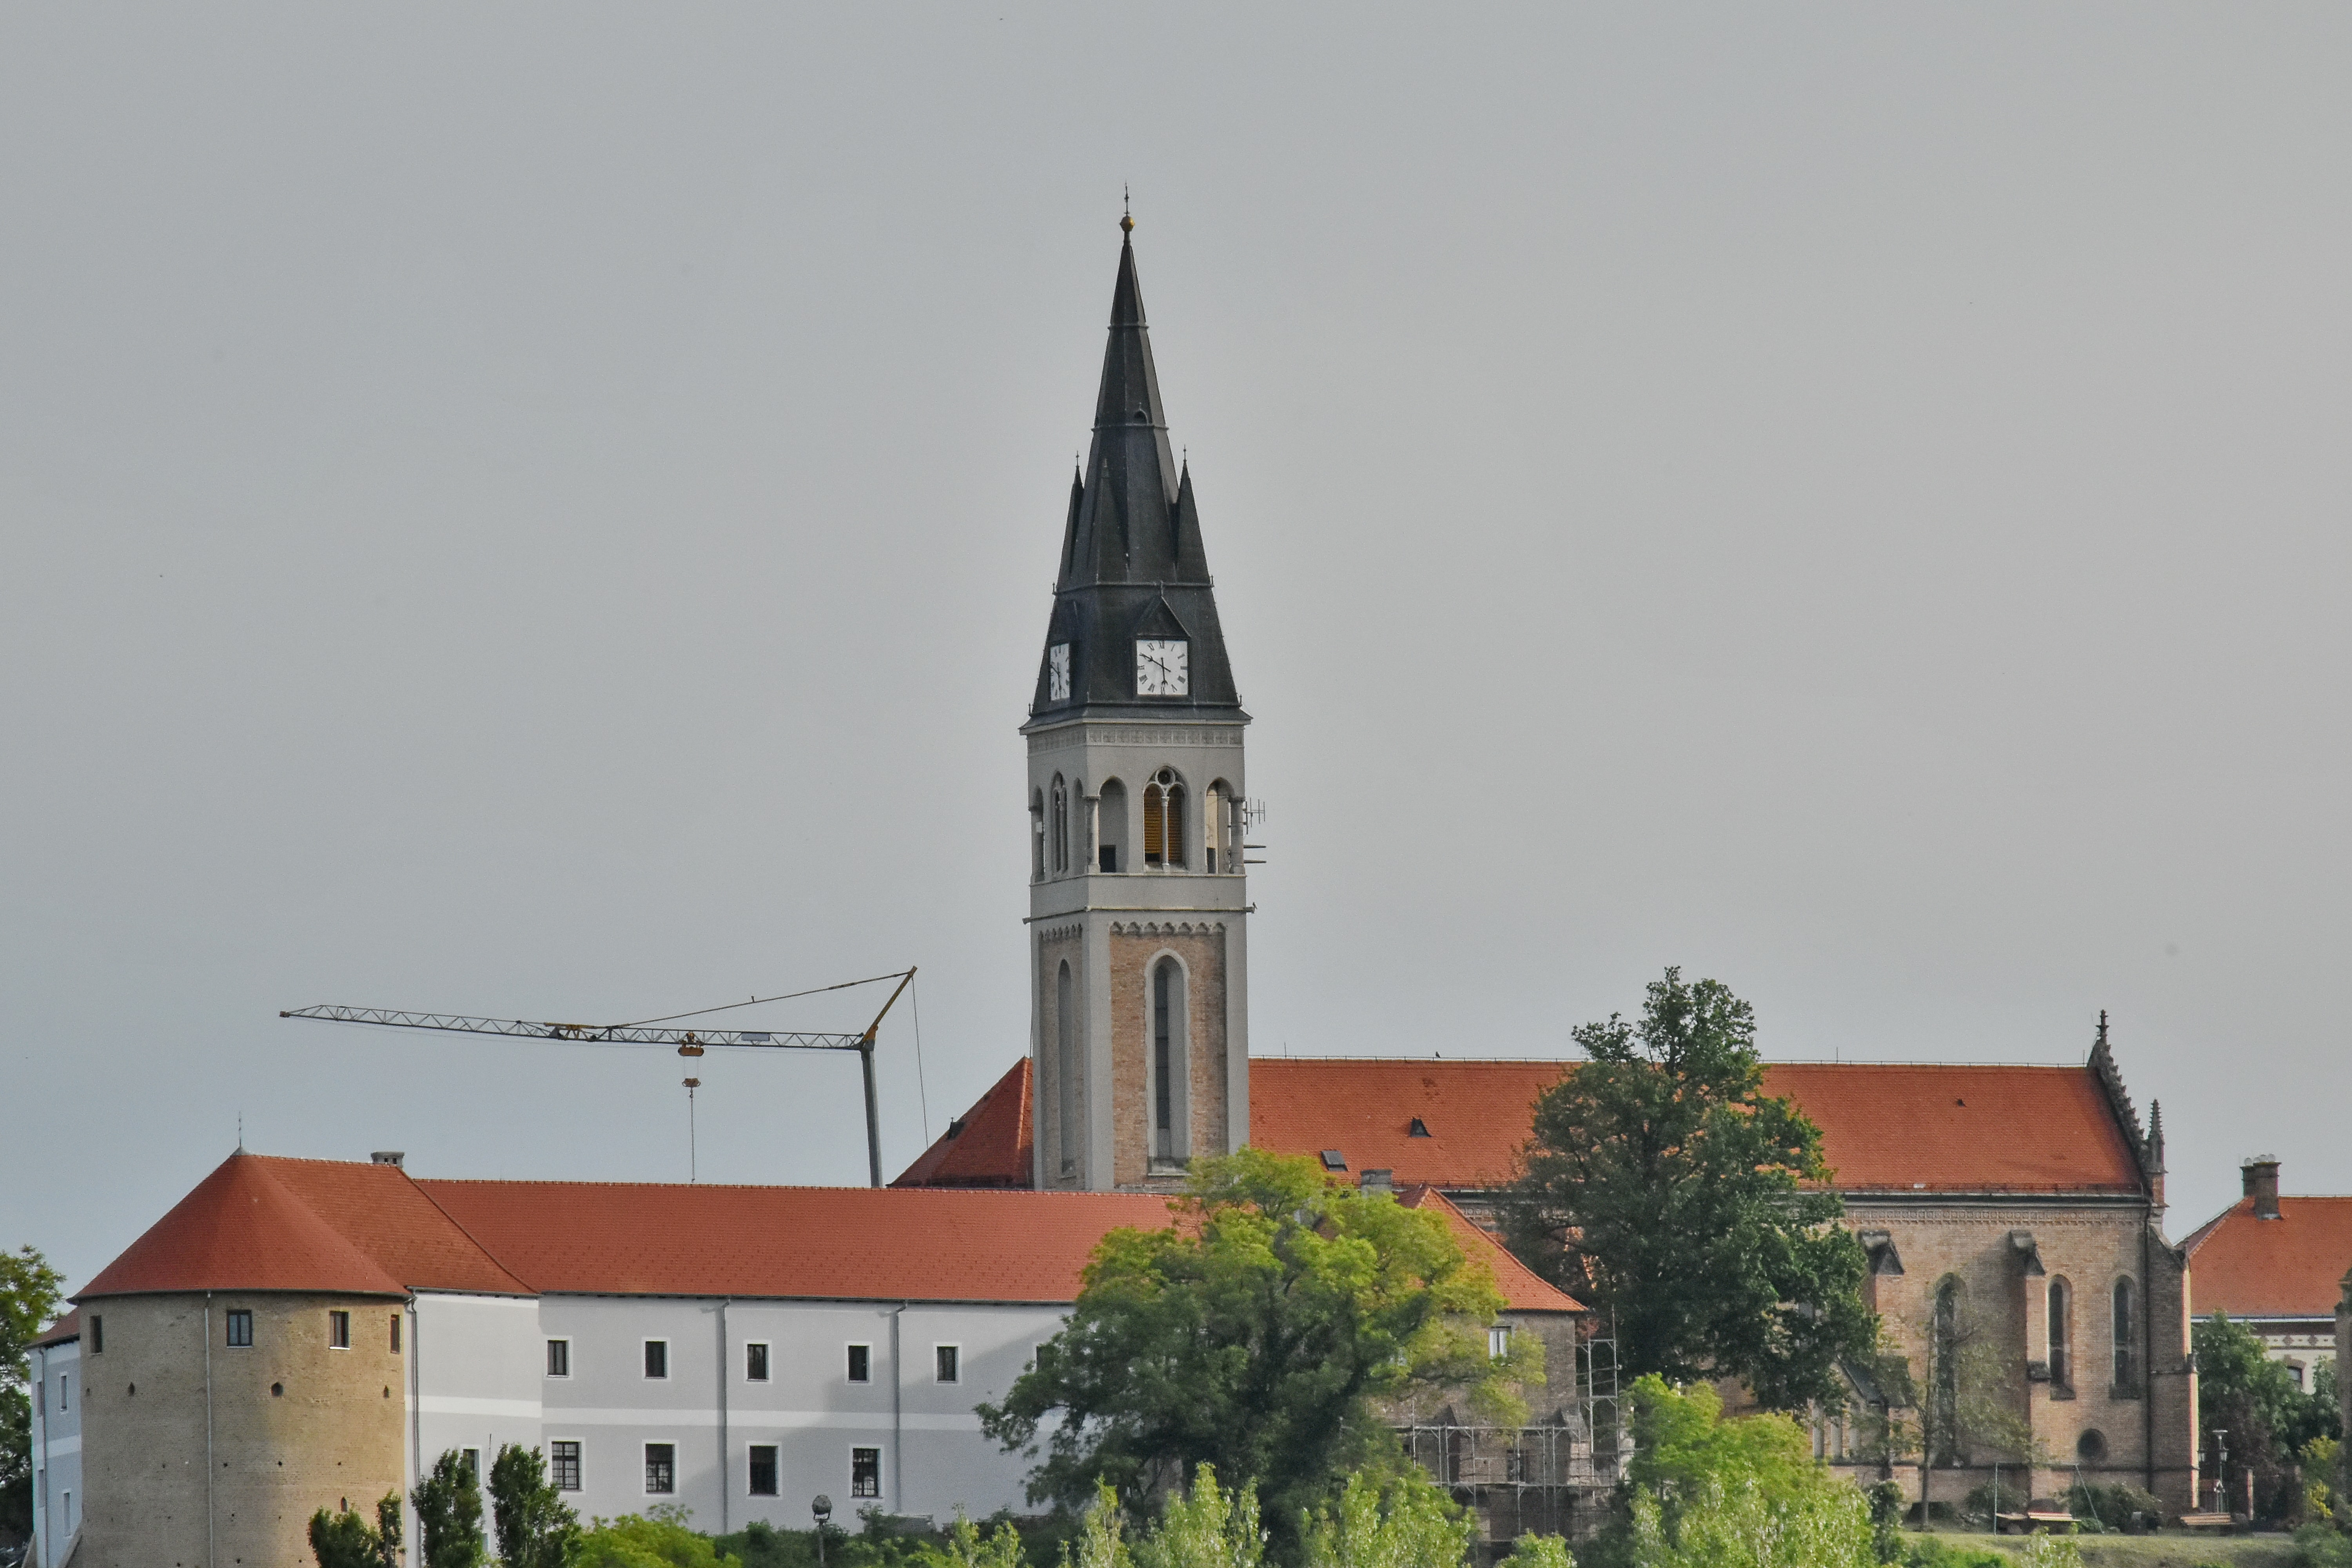 Free picture: castle, church tower, Croatia, gothic